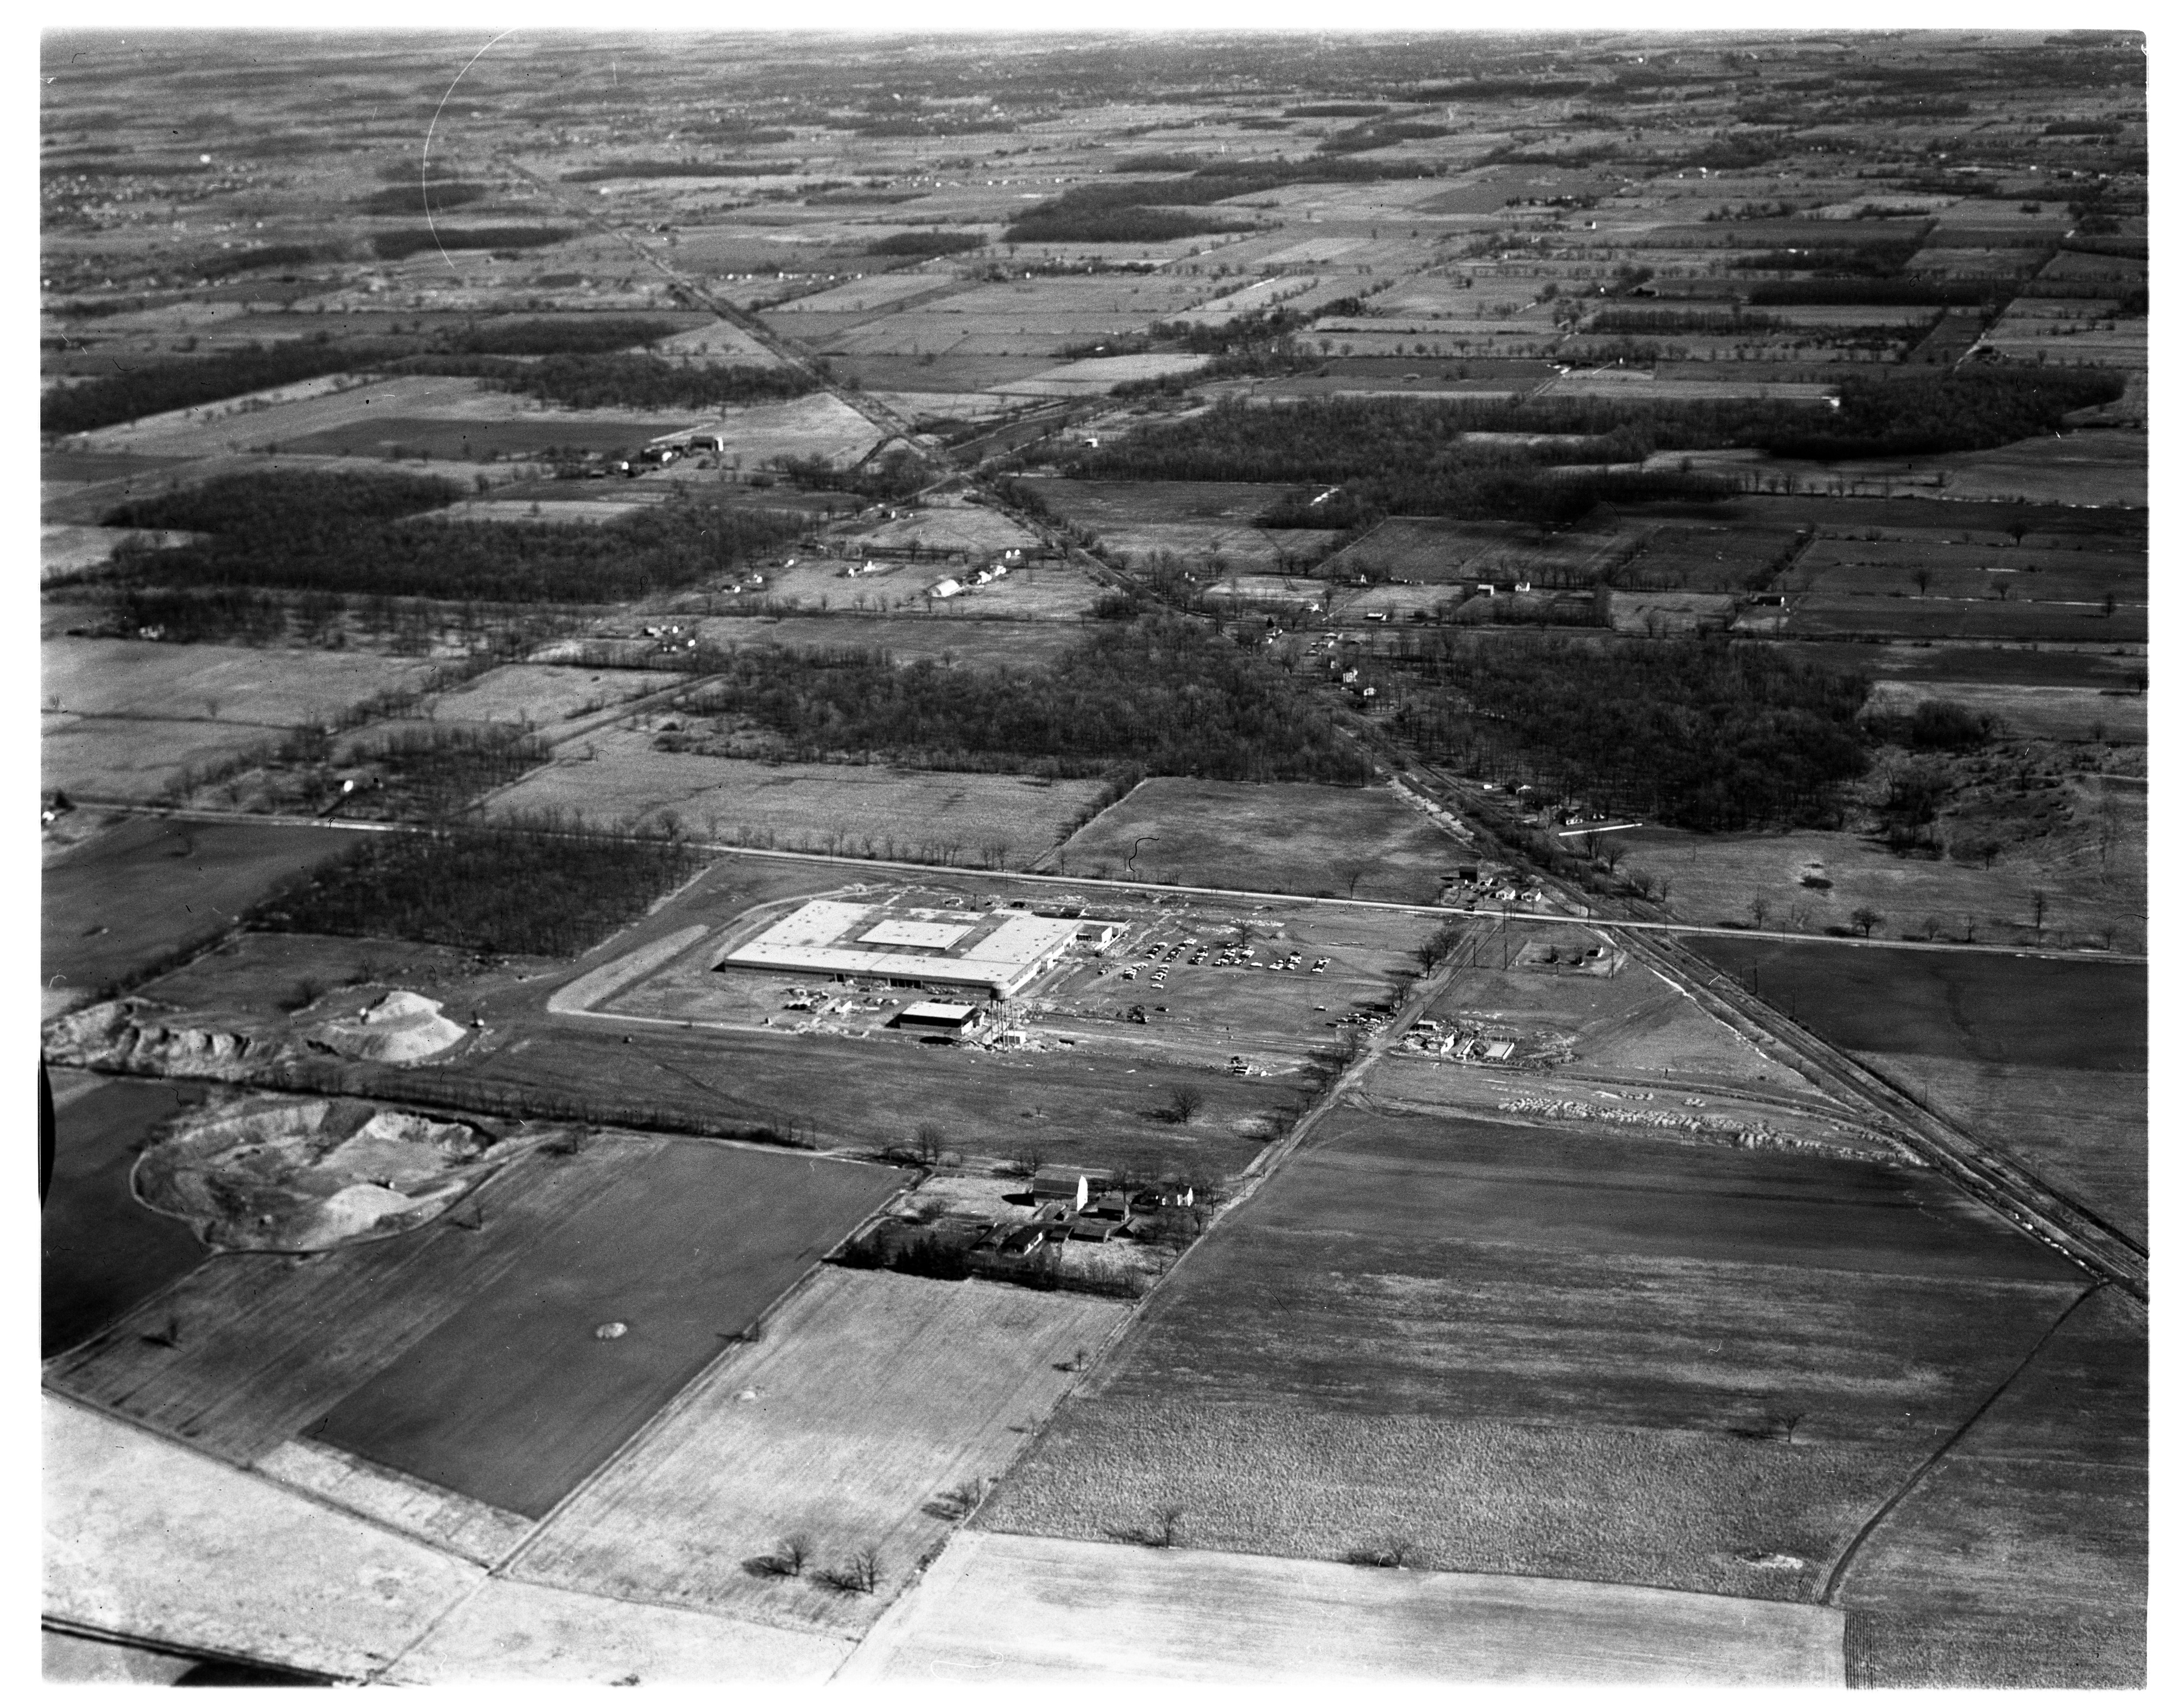 Aerial Photograph of the New Hoover Ball & Bearing Co. Plant, March 1958 image